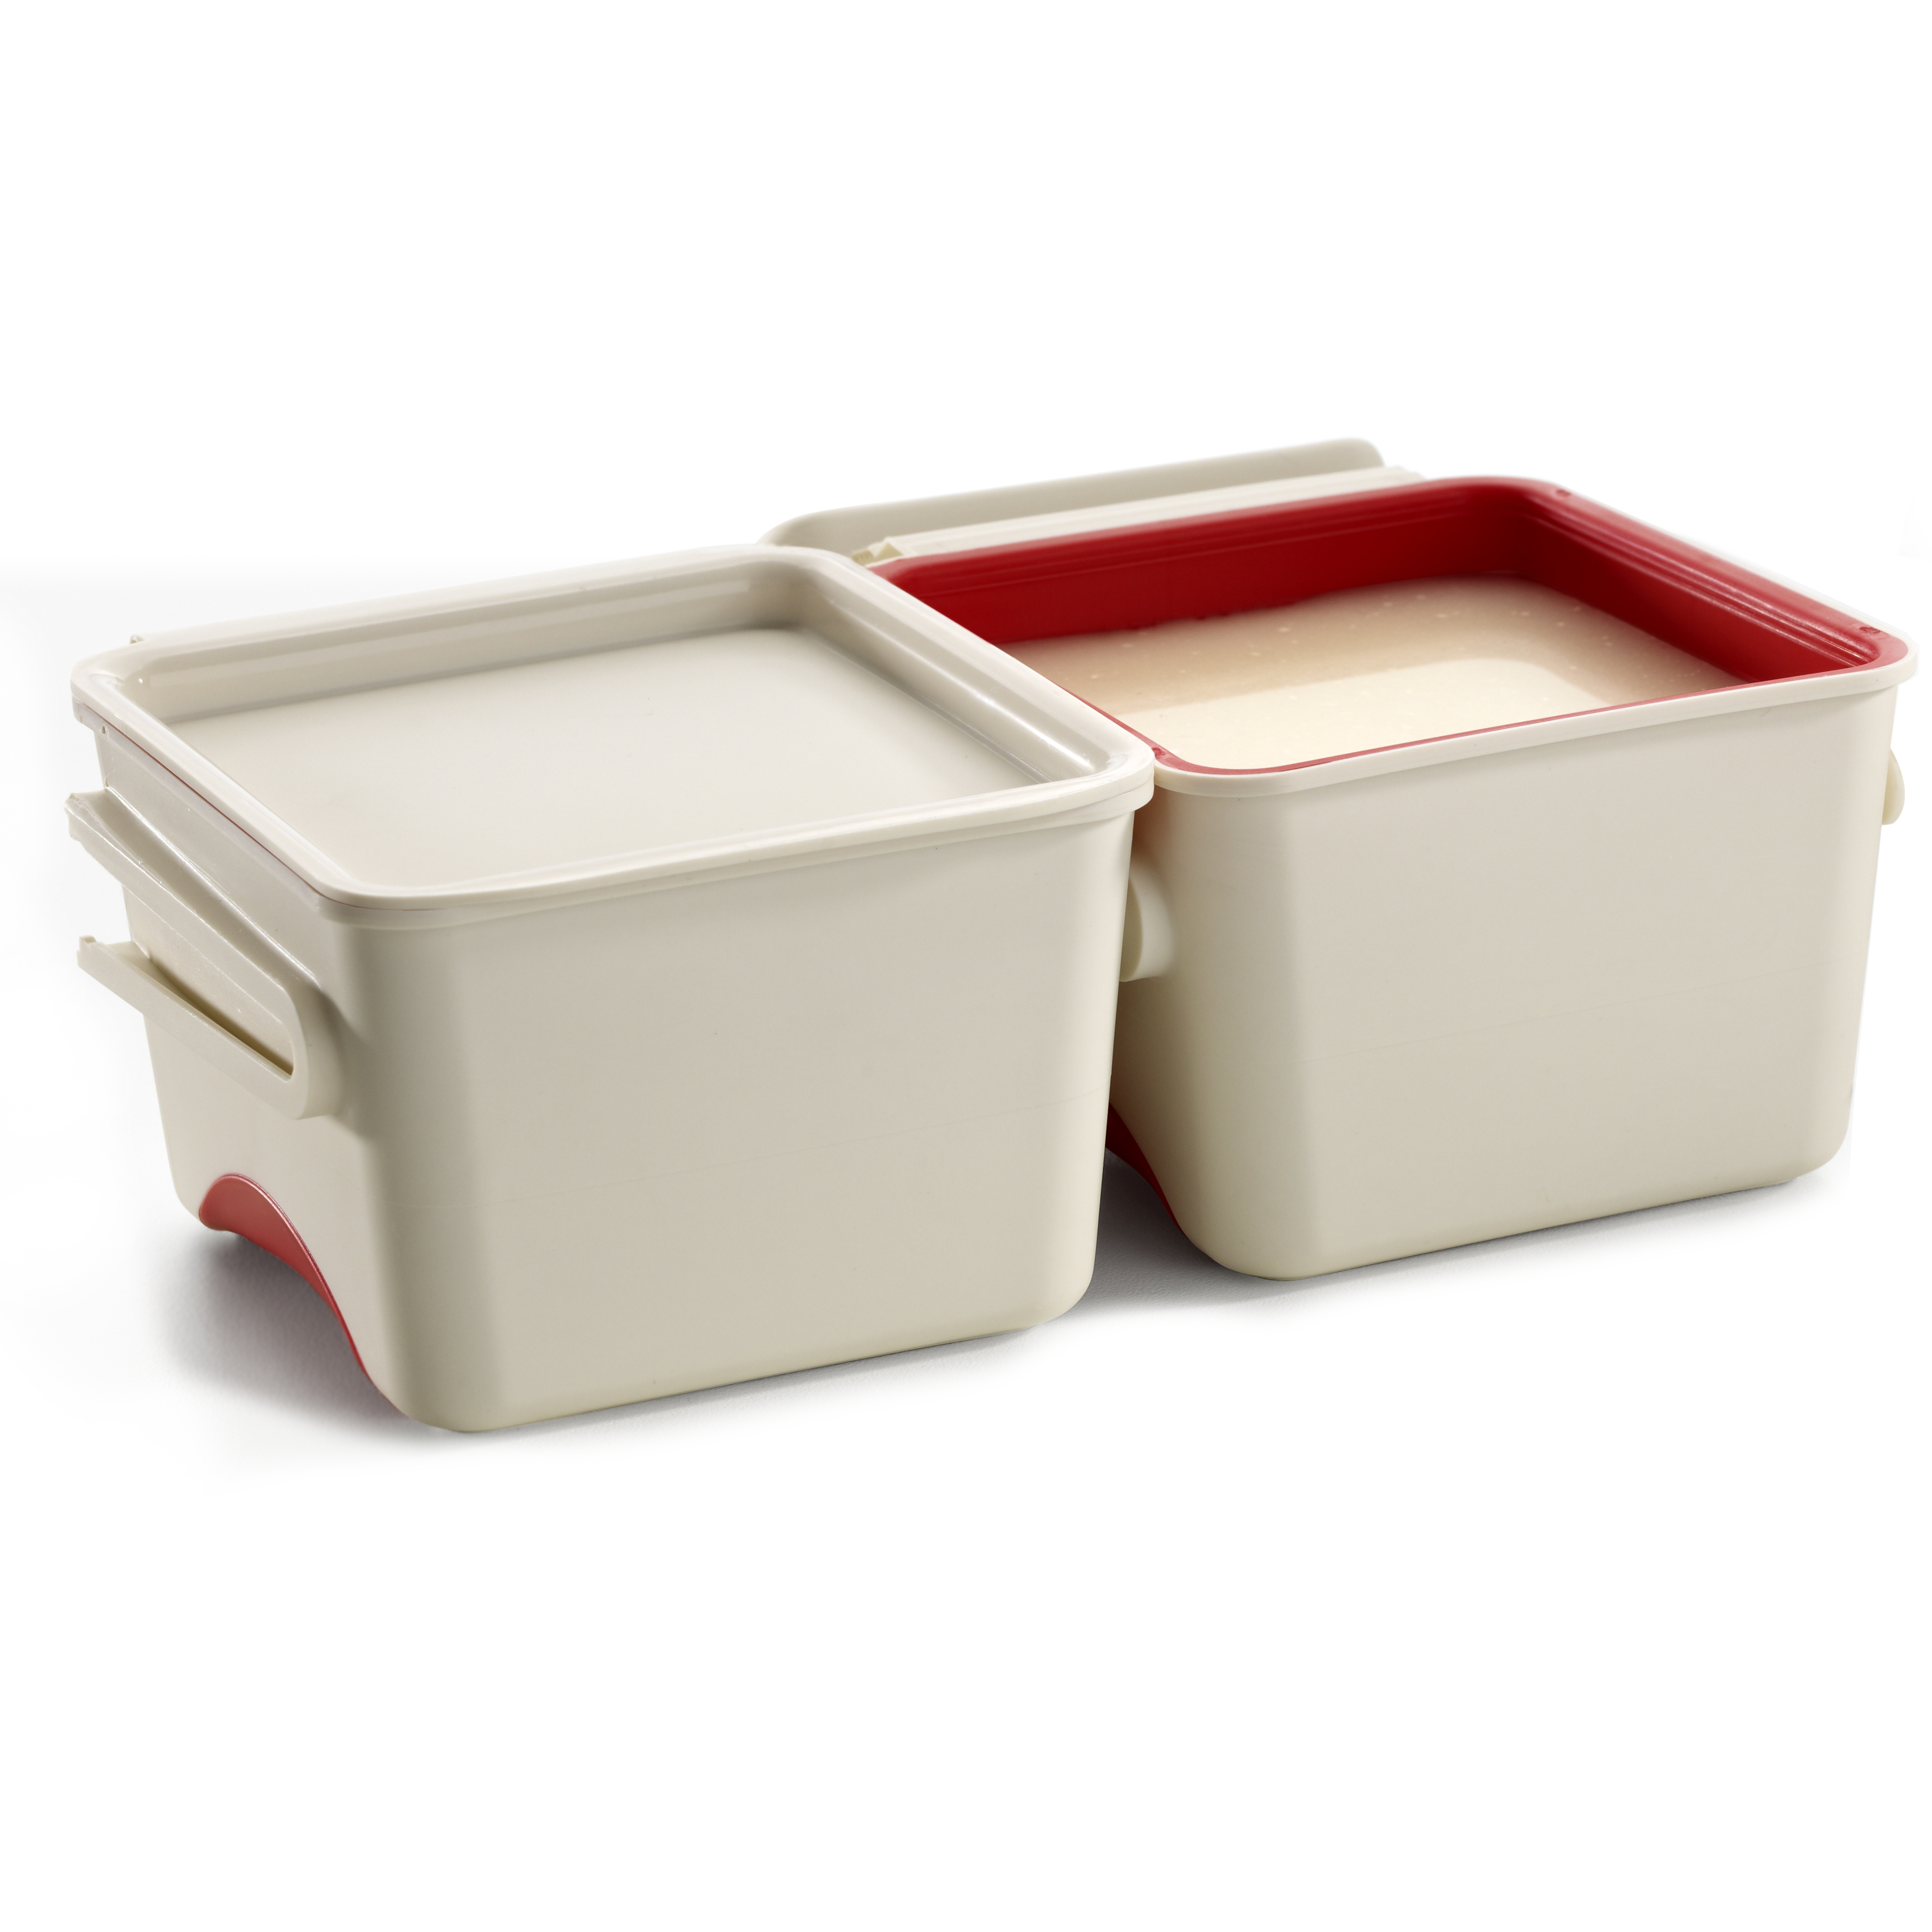 Lekue Red Silicone and White Plastic 8.4 Ounce Leftover Container, Set of 2